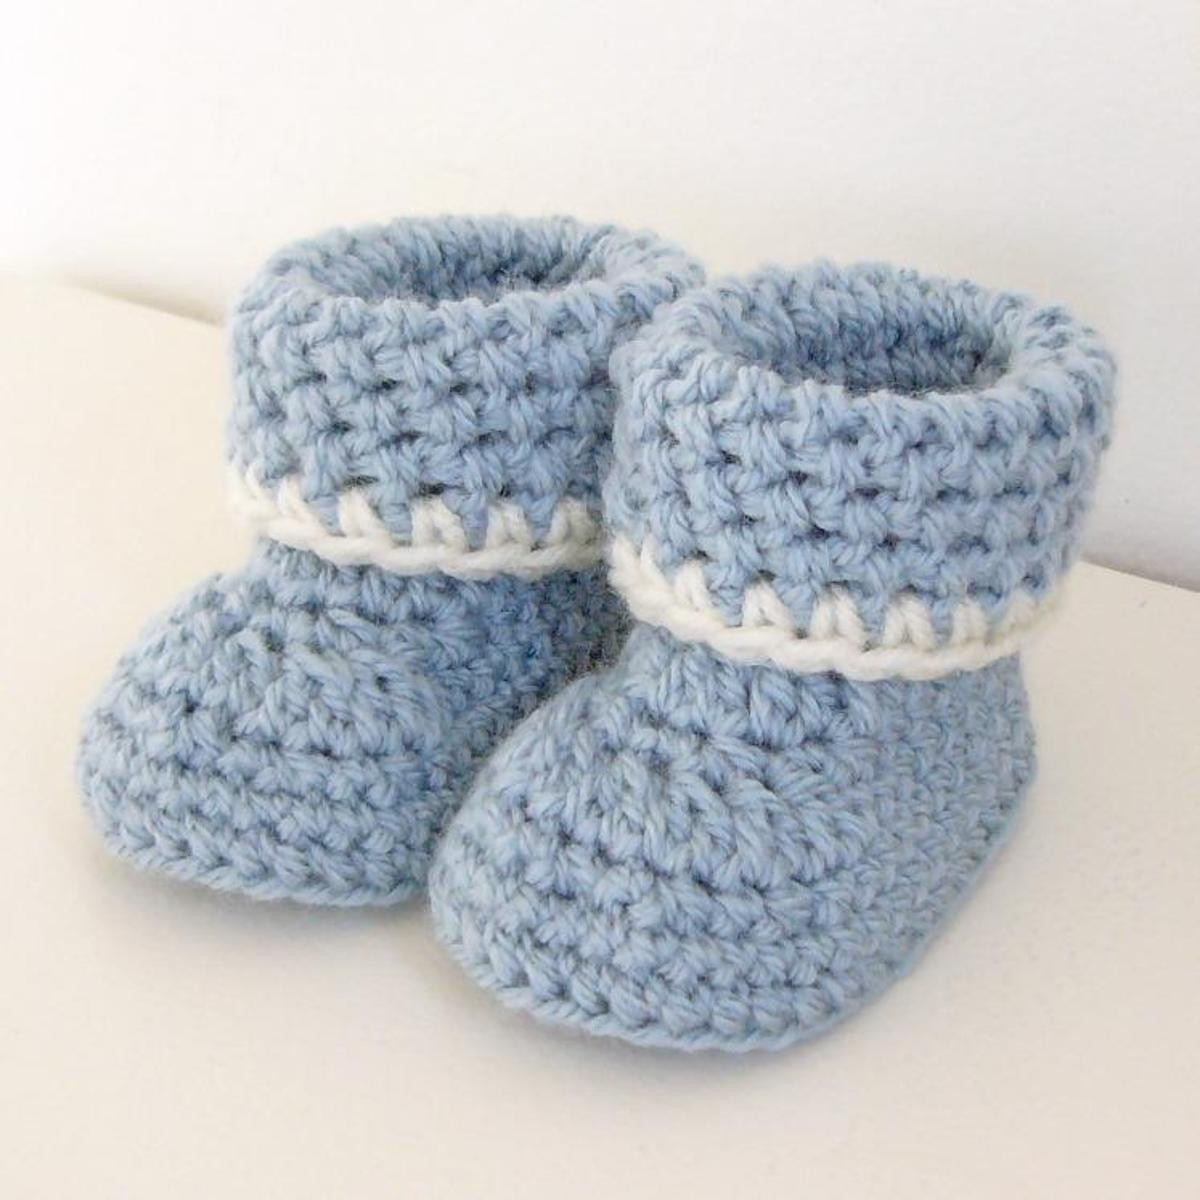 Crochet Booties Awesome Cozy Cuffs Crochet Baby Booties Pattern Of Wonderful 43 Pics Crochet Booties